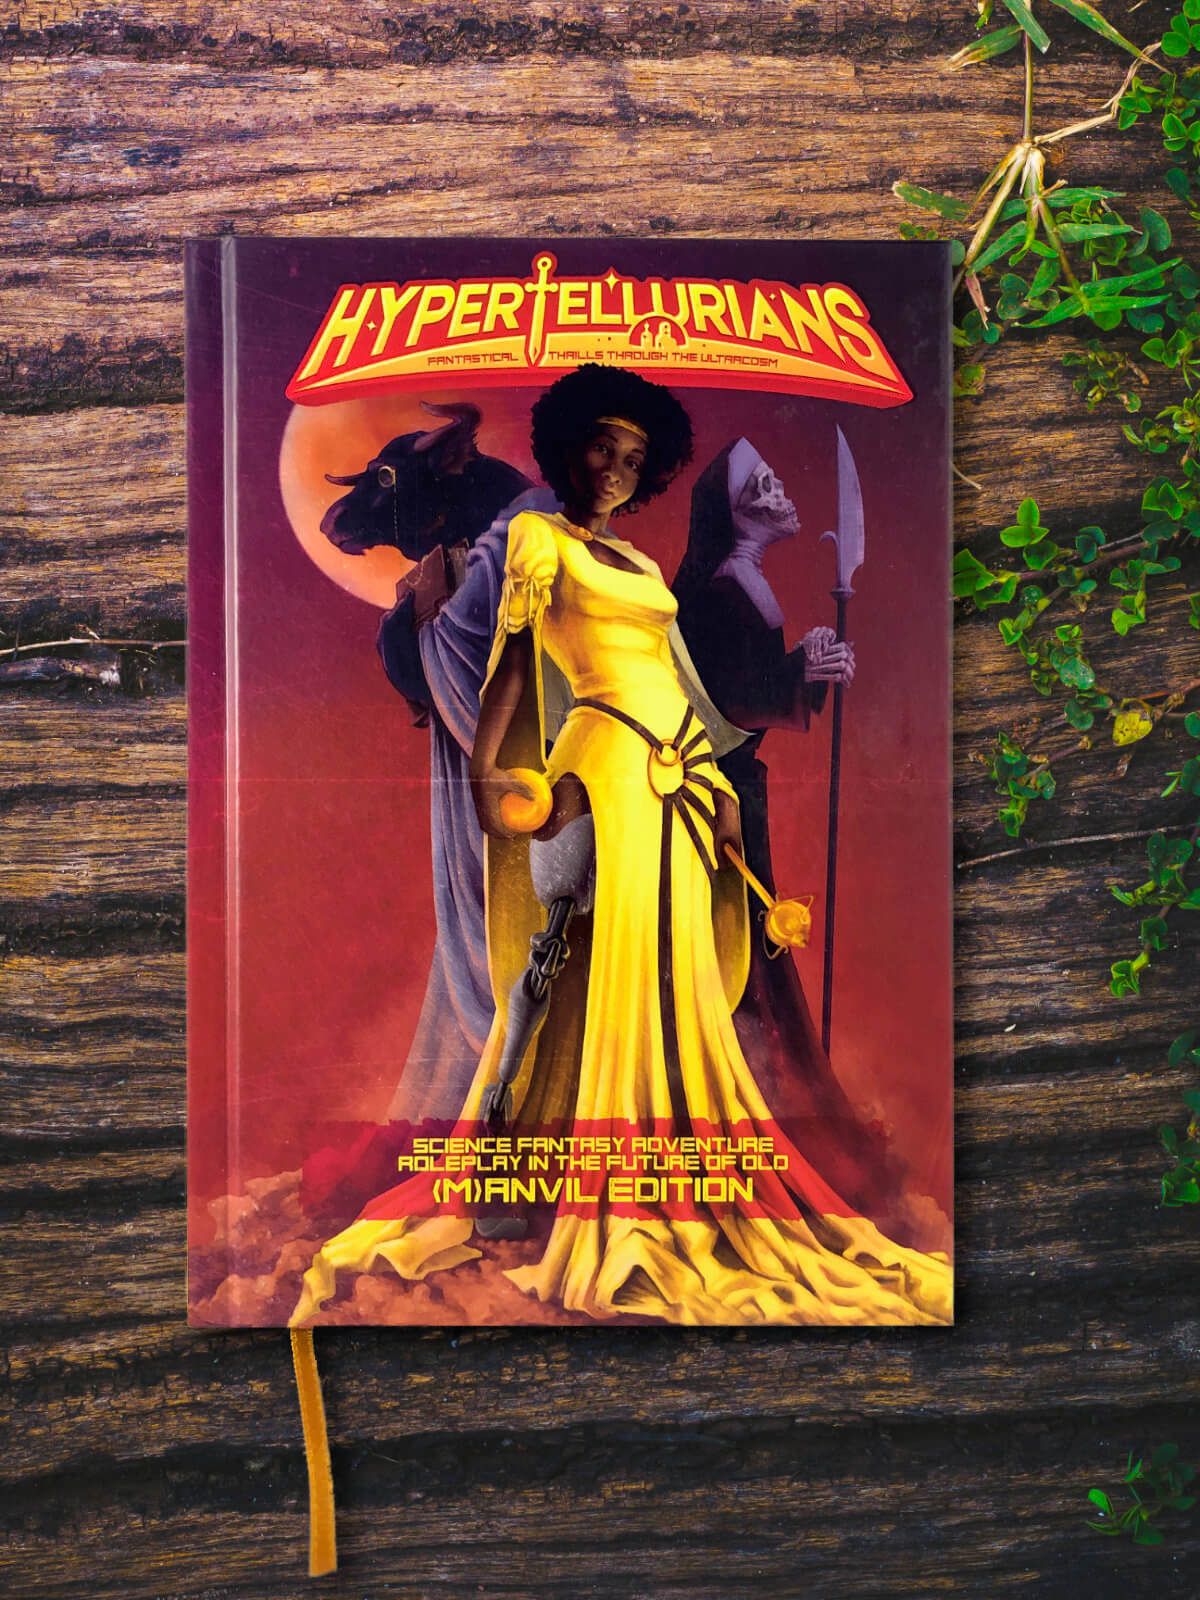 Hypertellurians (M)Anvil Edition